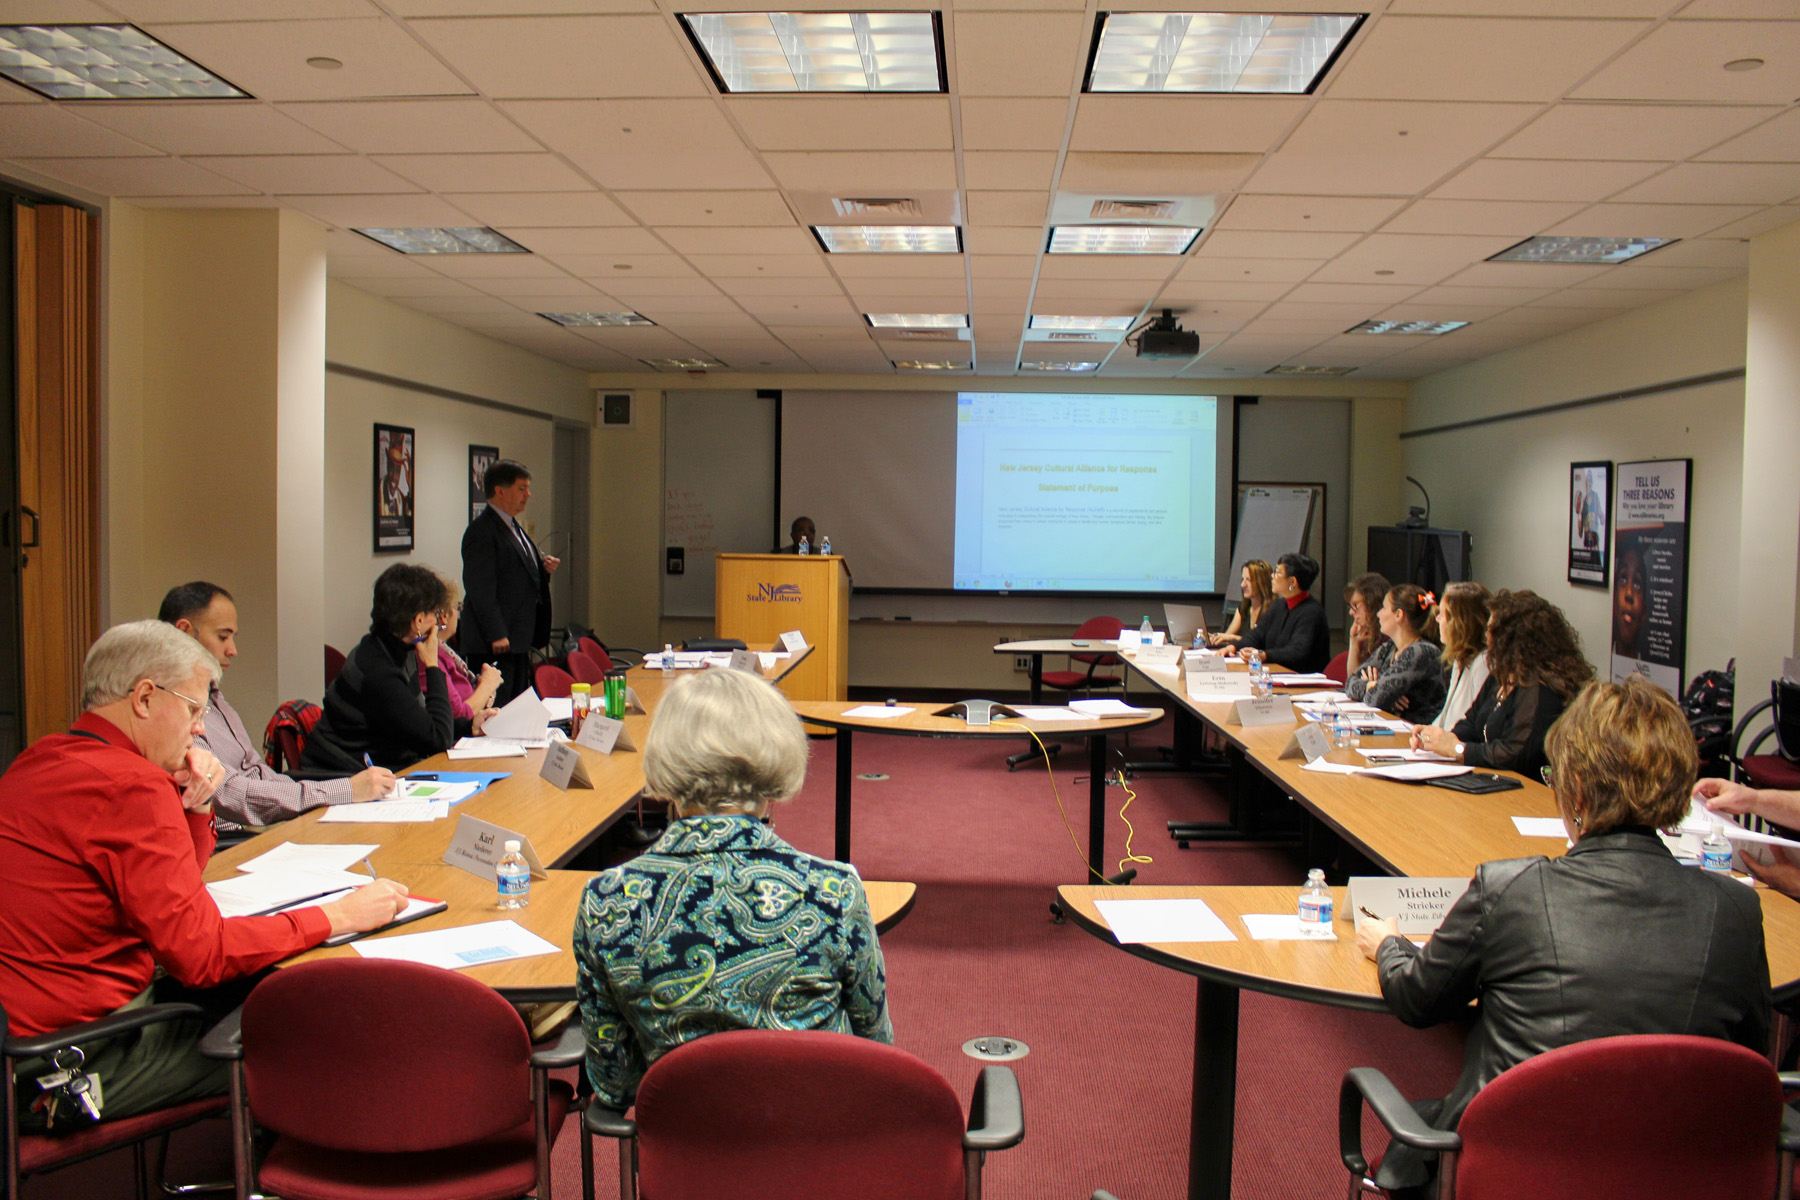 Tom Clareson Leads Disaster Preparedness Training Project in New Jersey